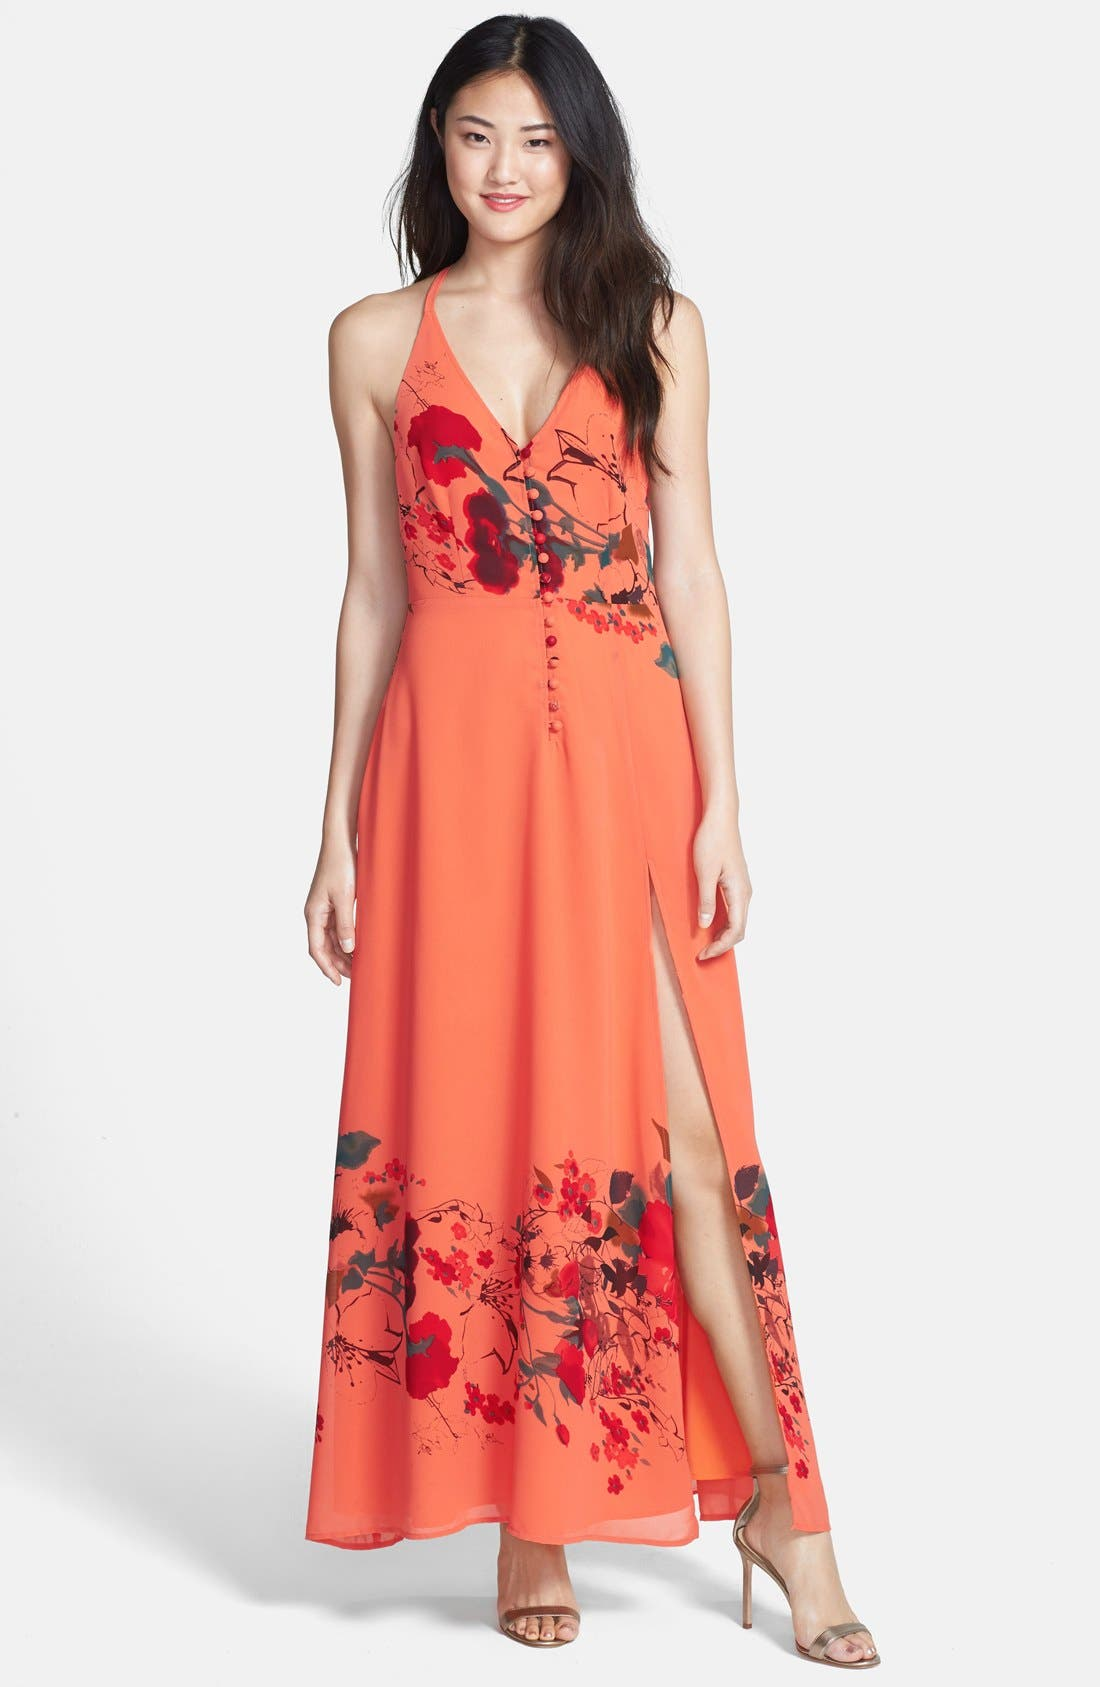 Main Image - Jarlo 'Adora' Crochet T-Back Print Chiffon Maxi Dress